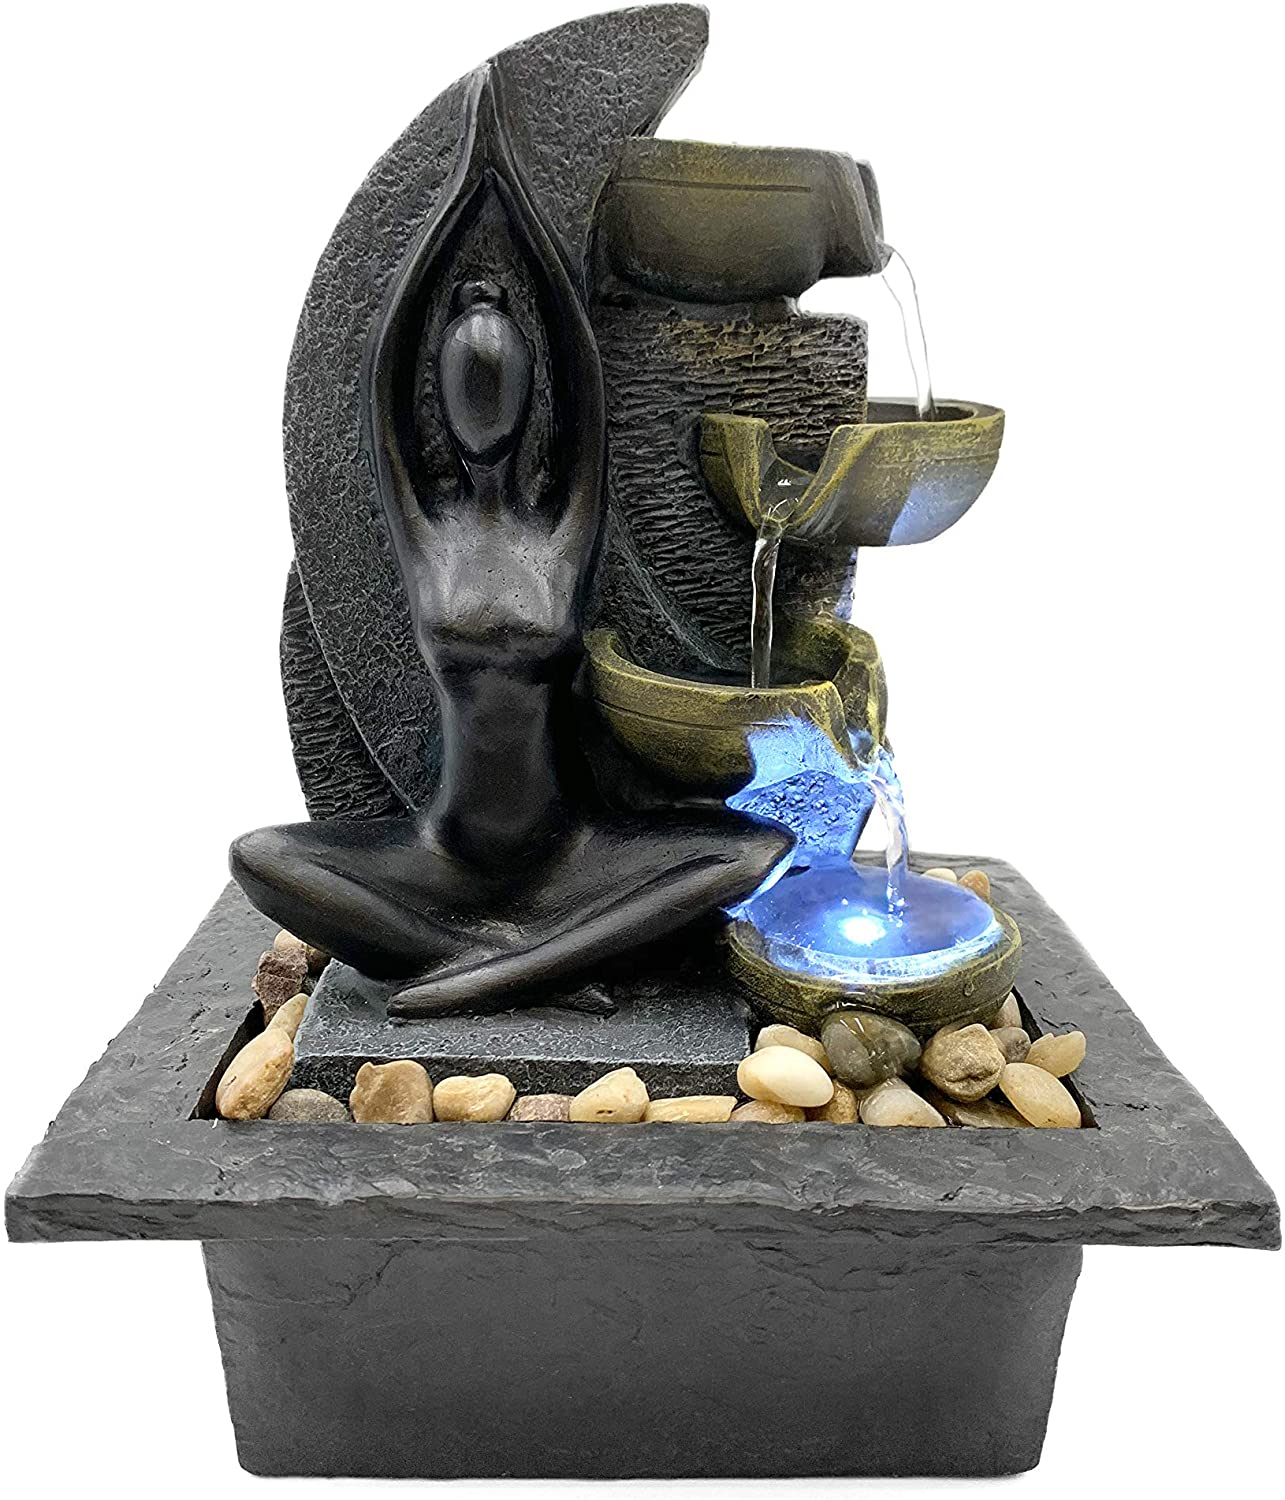 DANNER MANUFACTURING 03822 Felicity Table Top Meditation Fountain